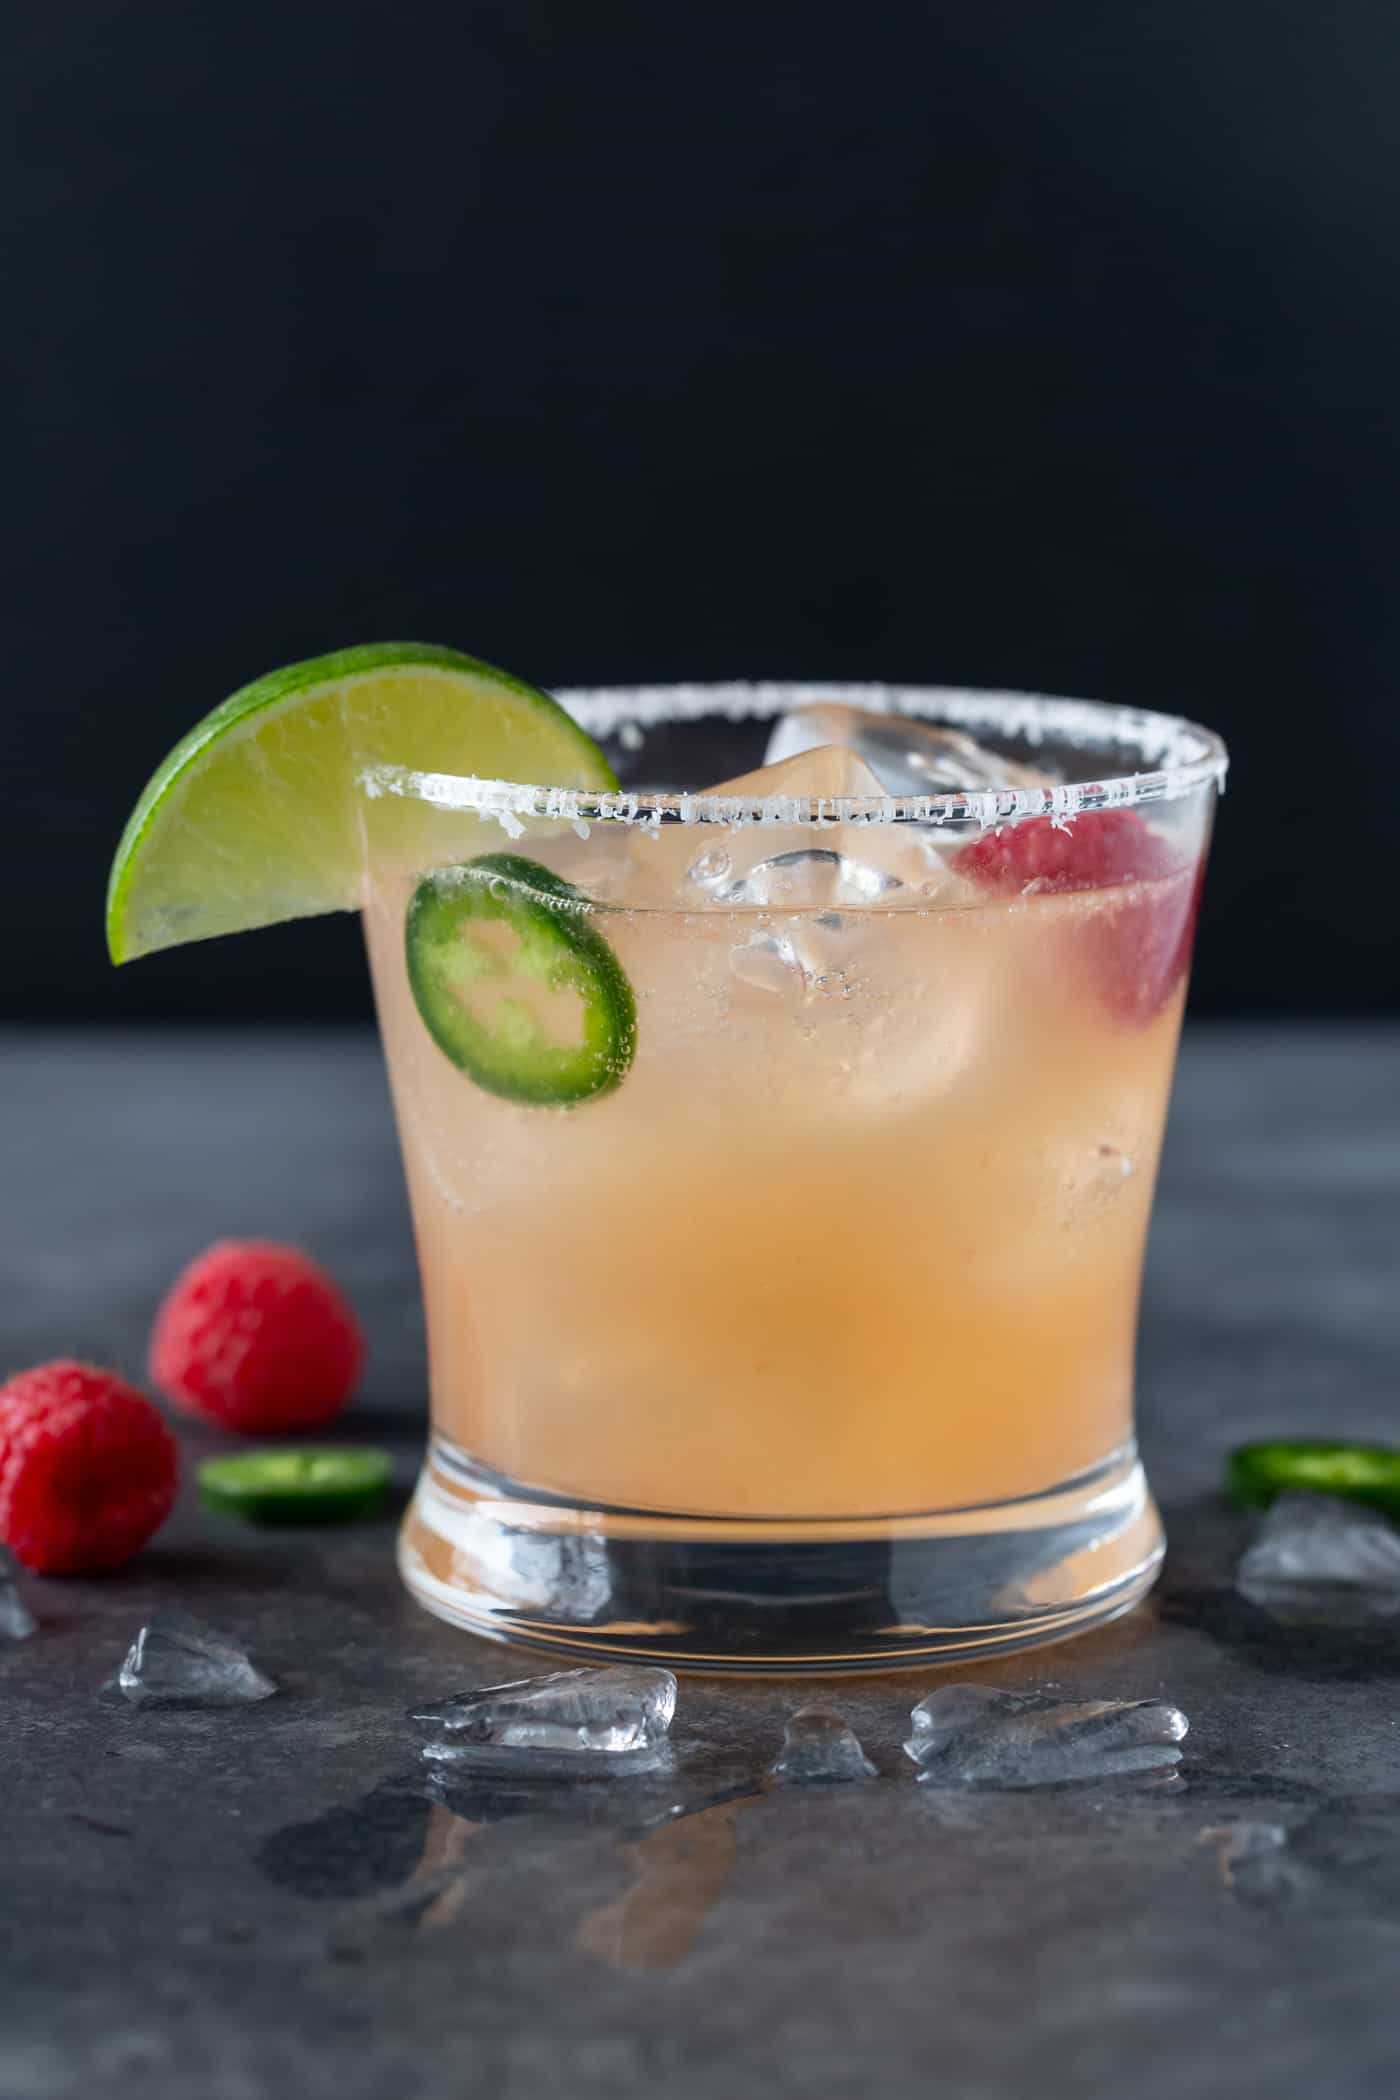 A lowball glass with a salted rim filled with Raspberry Paloma Cocktail and garnished with fresh raspberries, jalapeno slices and a lime wedge.